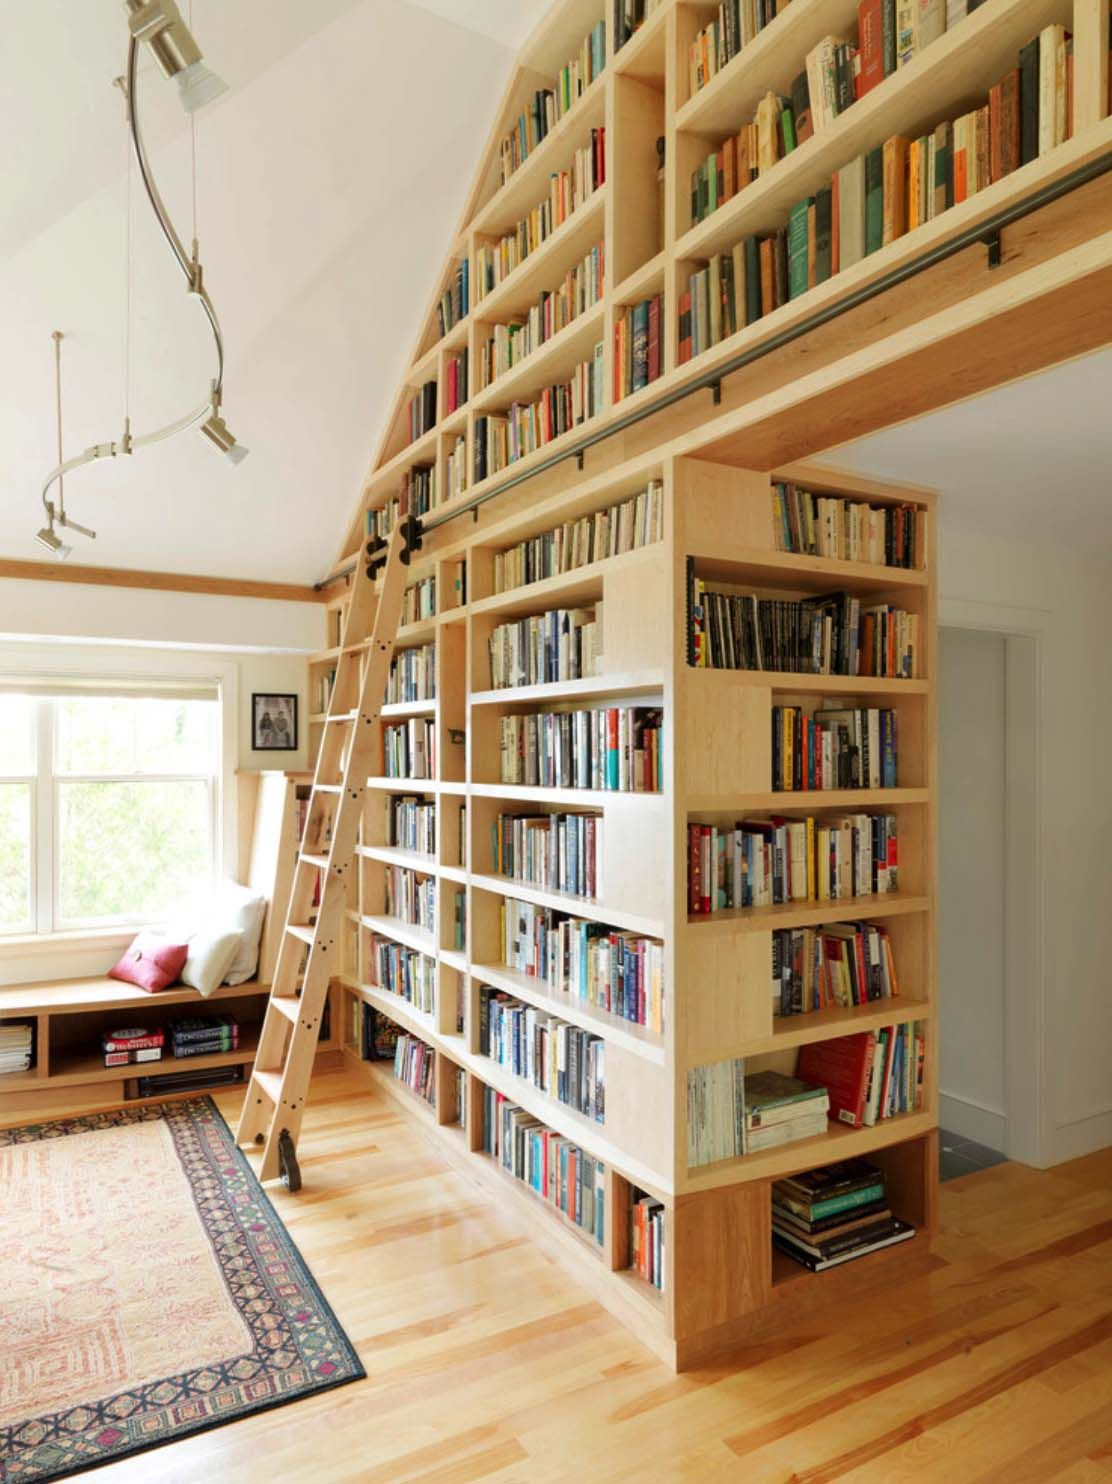 Fabulous home libraries showcasing window seats